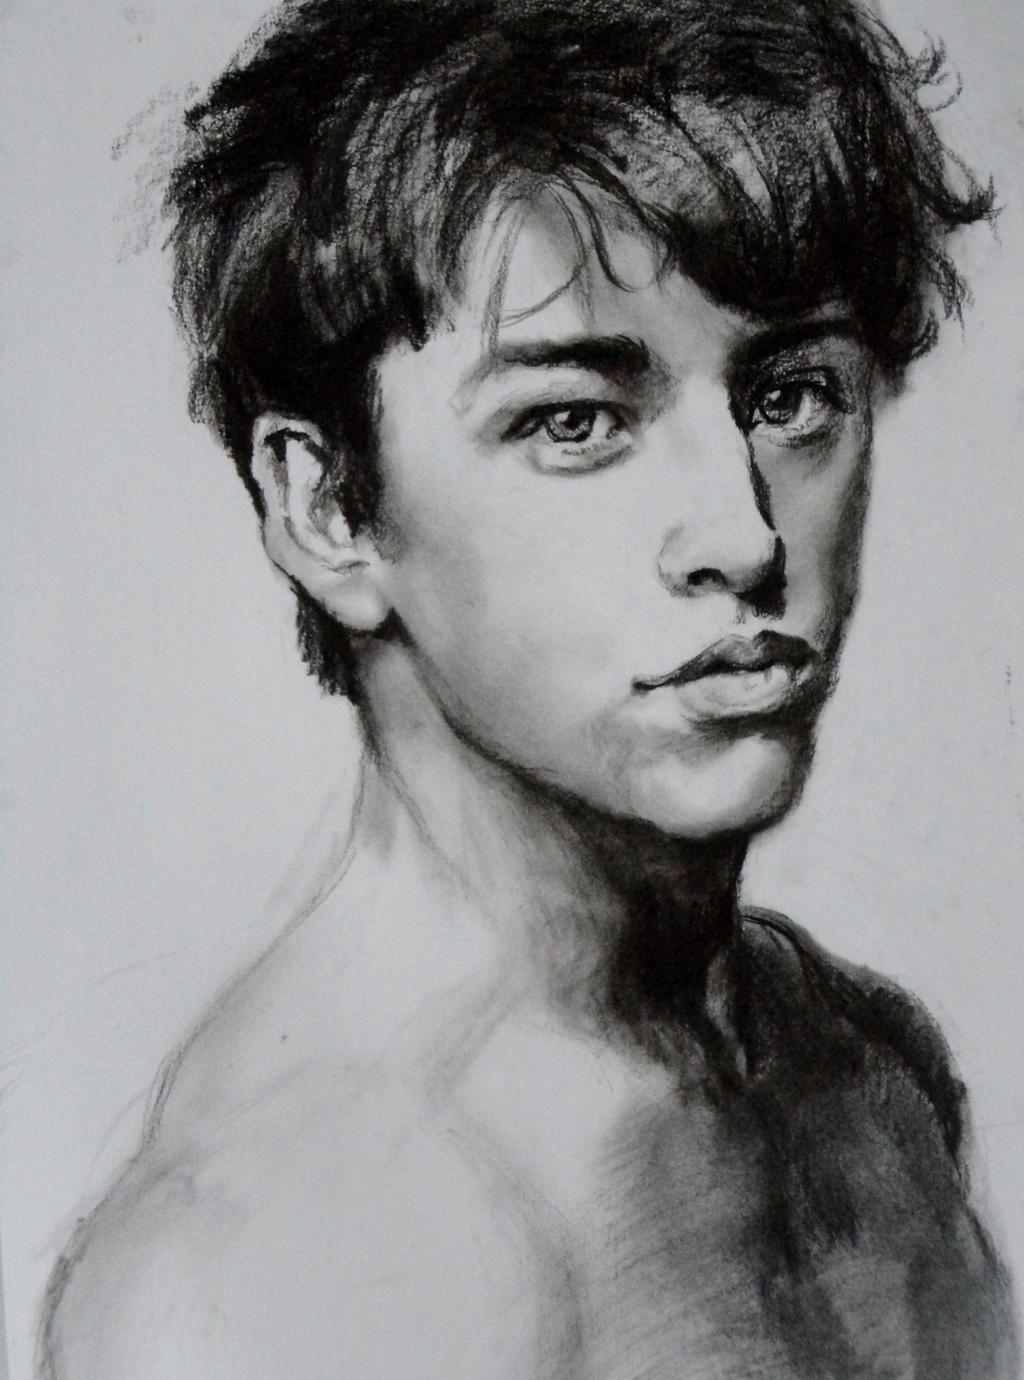 mitch hewer facebook